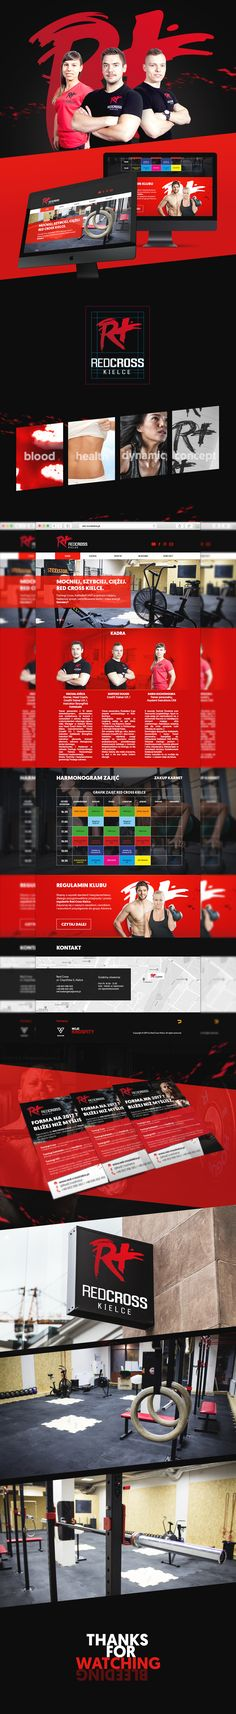 Red CrossFit branding (key visual, photos, logo, web and more)